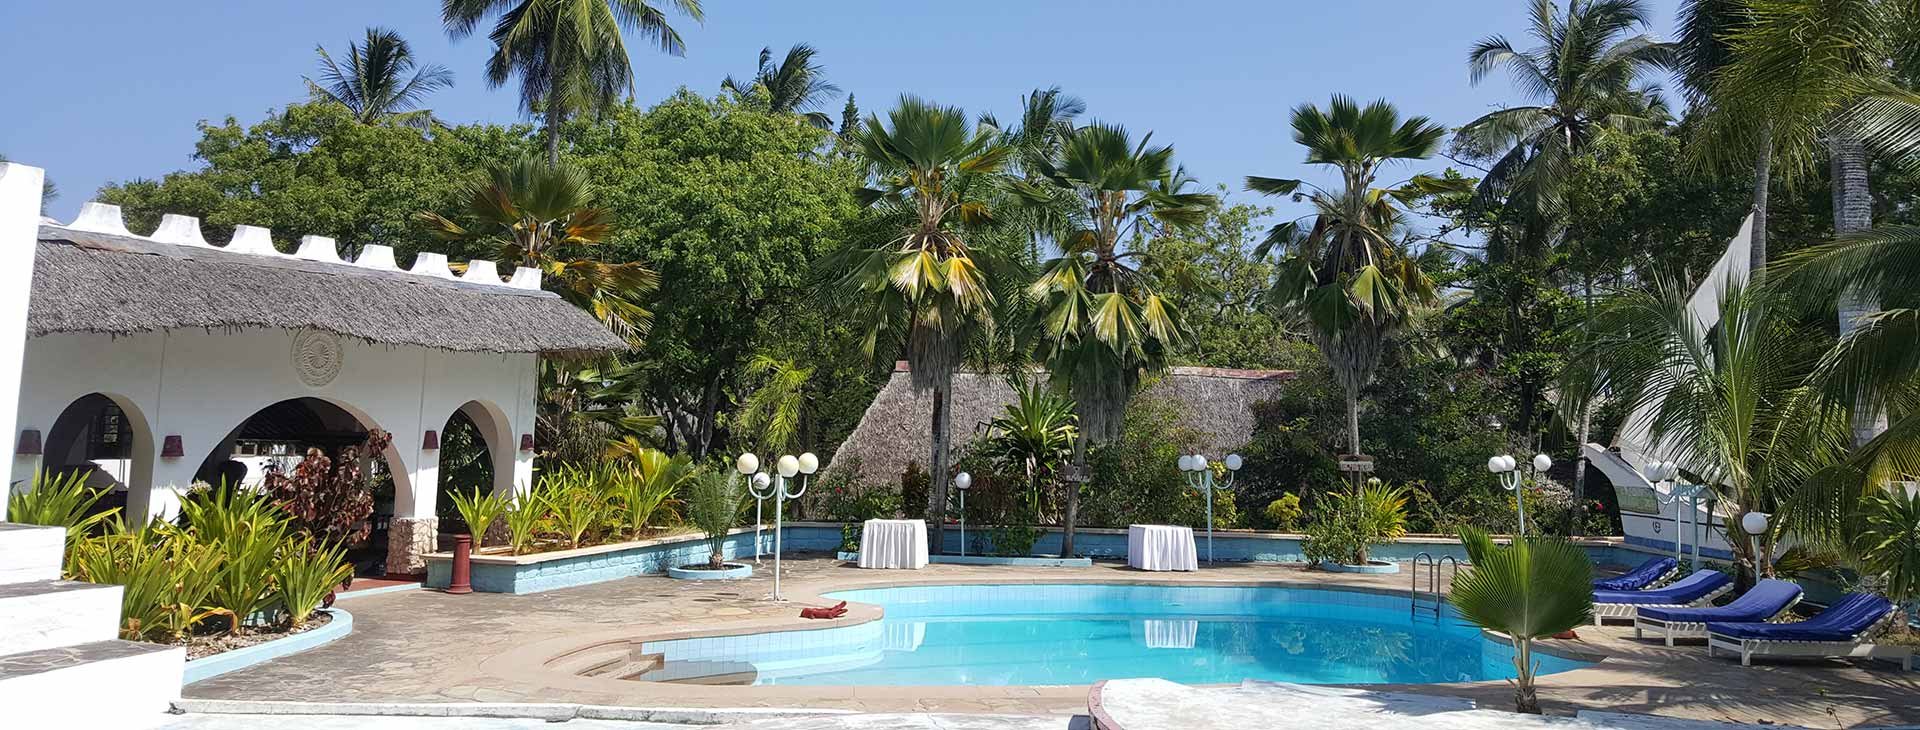 Kenijskie Trio / Kilifi Bay Beach Resort Kenia Wyc. objazdowe